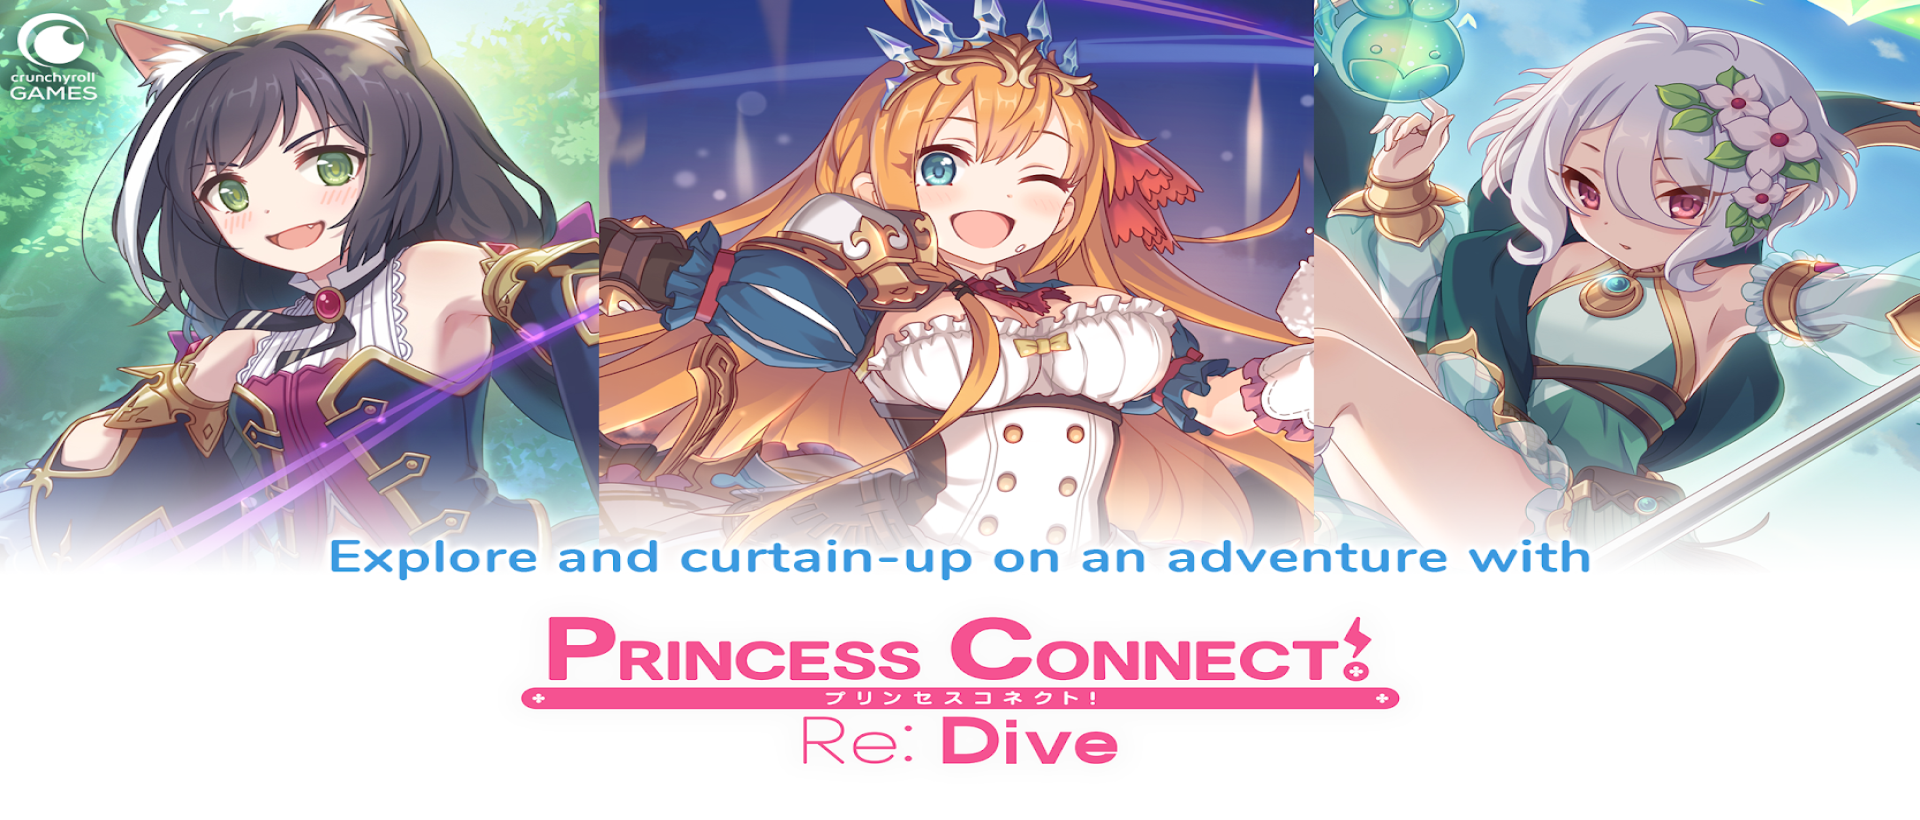 Princess Connect